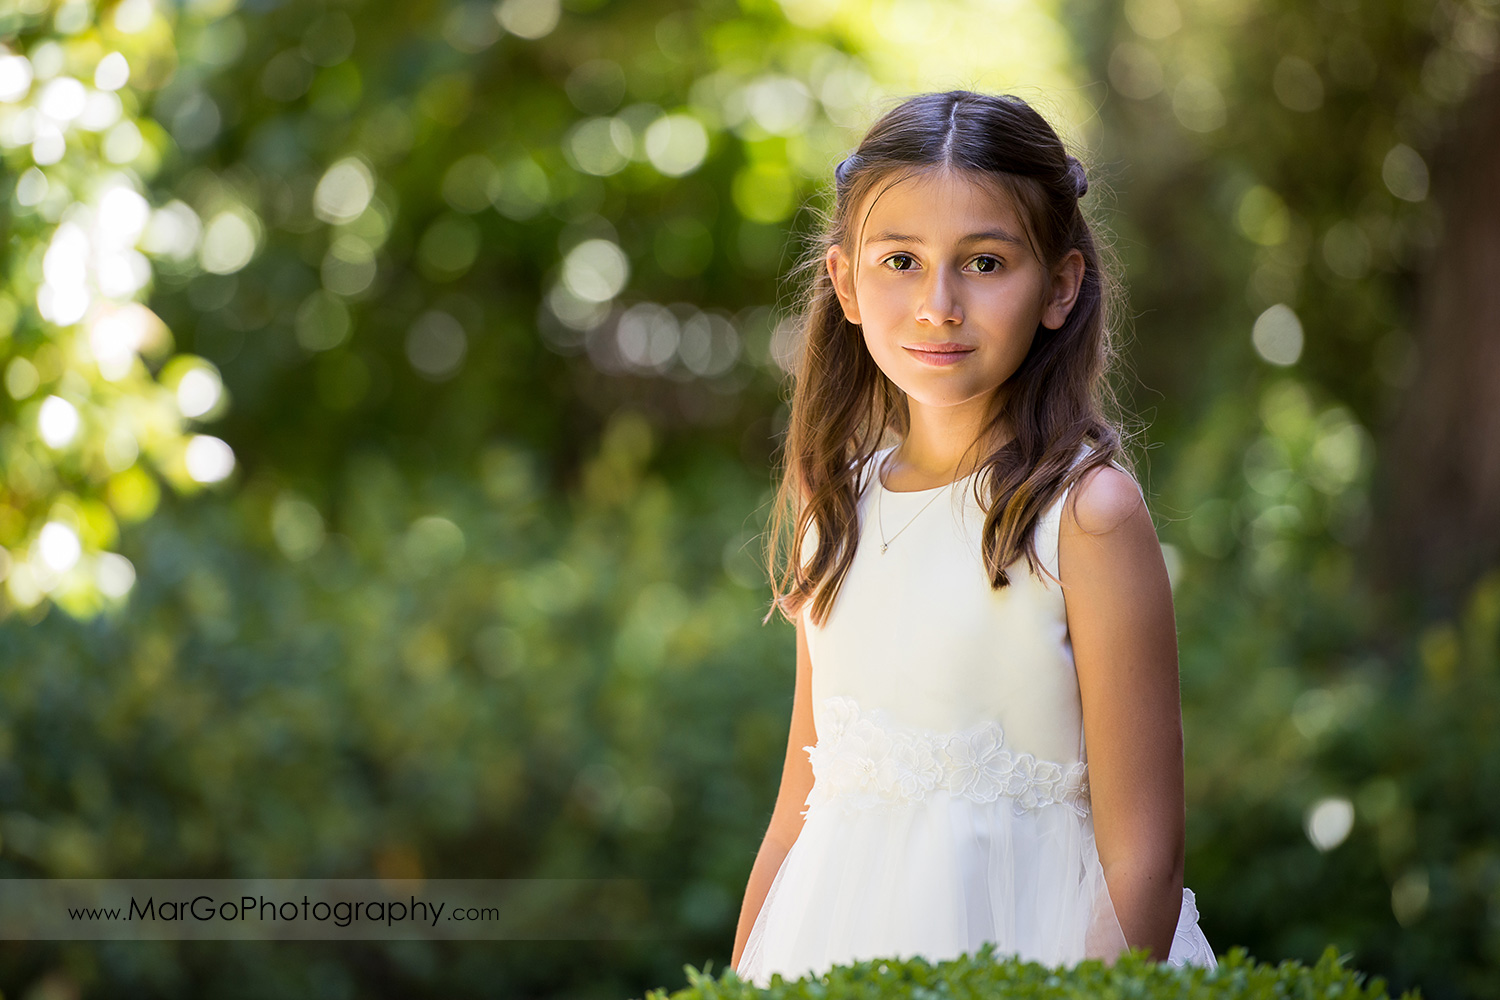 portrait of first communion girl in white dress at green background at Cafe Wisteria in Menlo Park